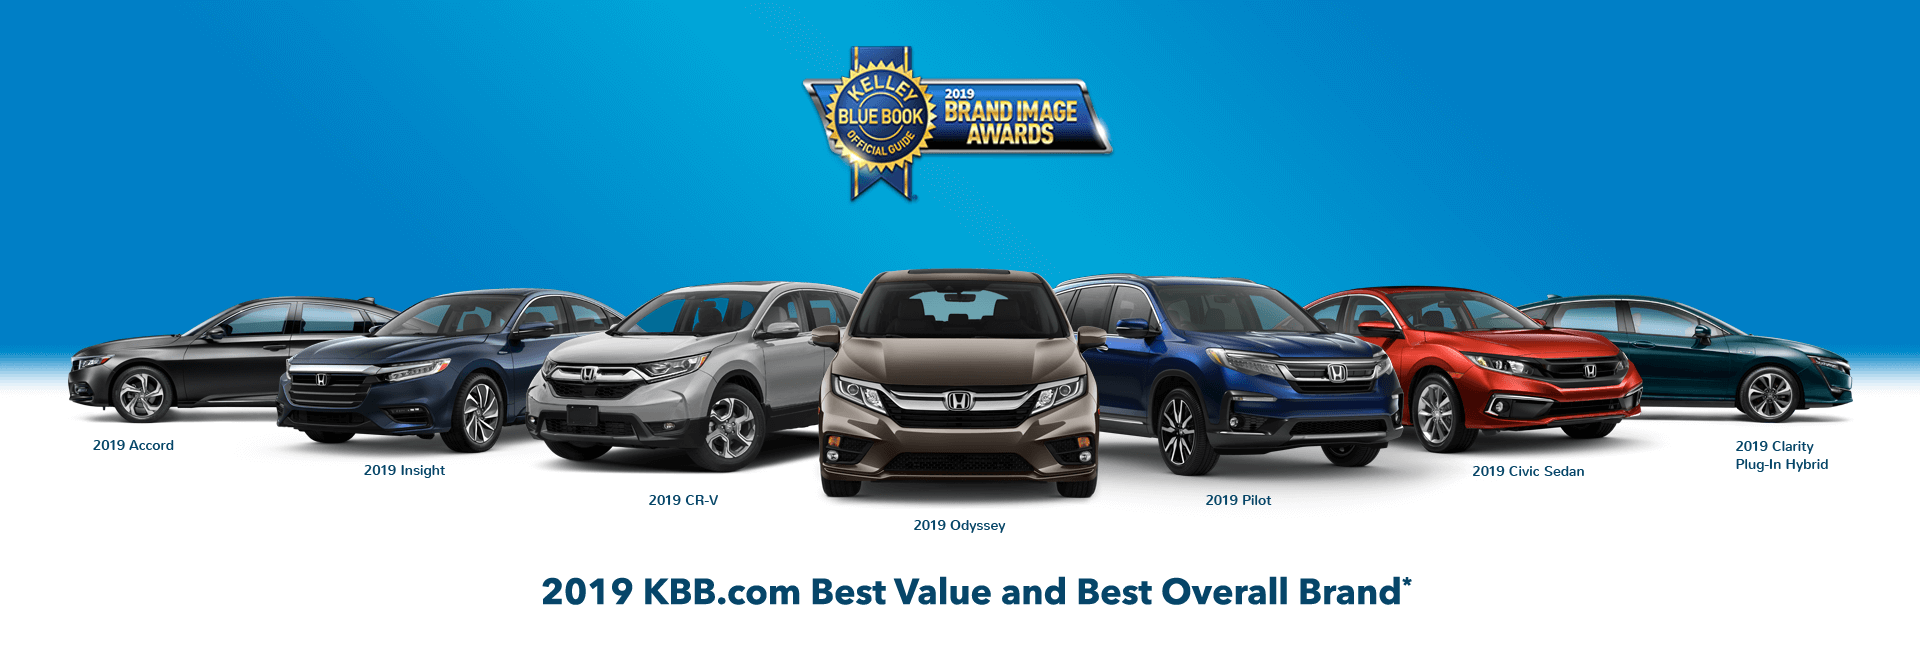 2019 Kelley Blue Book Brand Image Award Slider